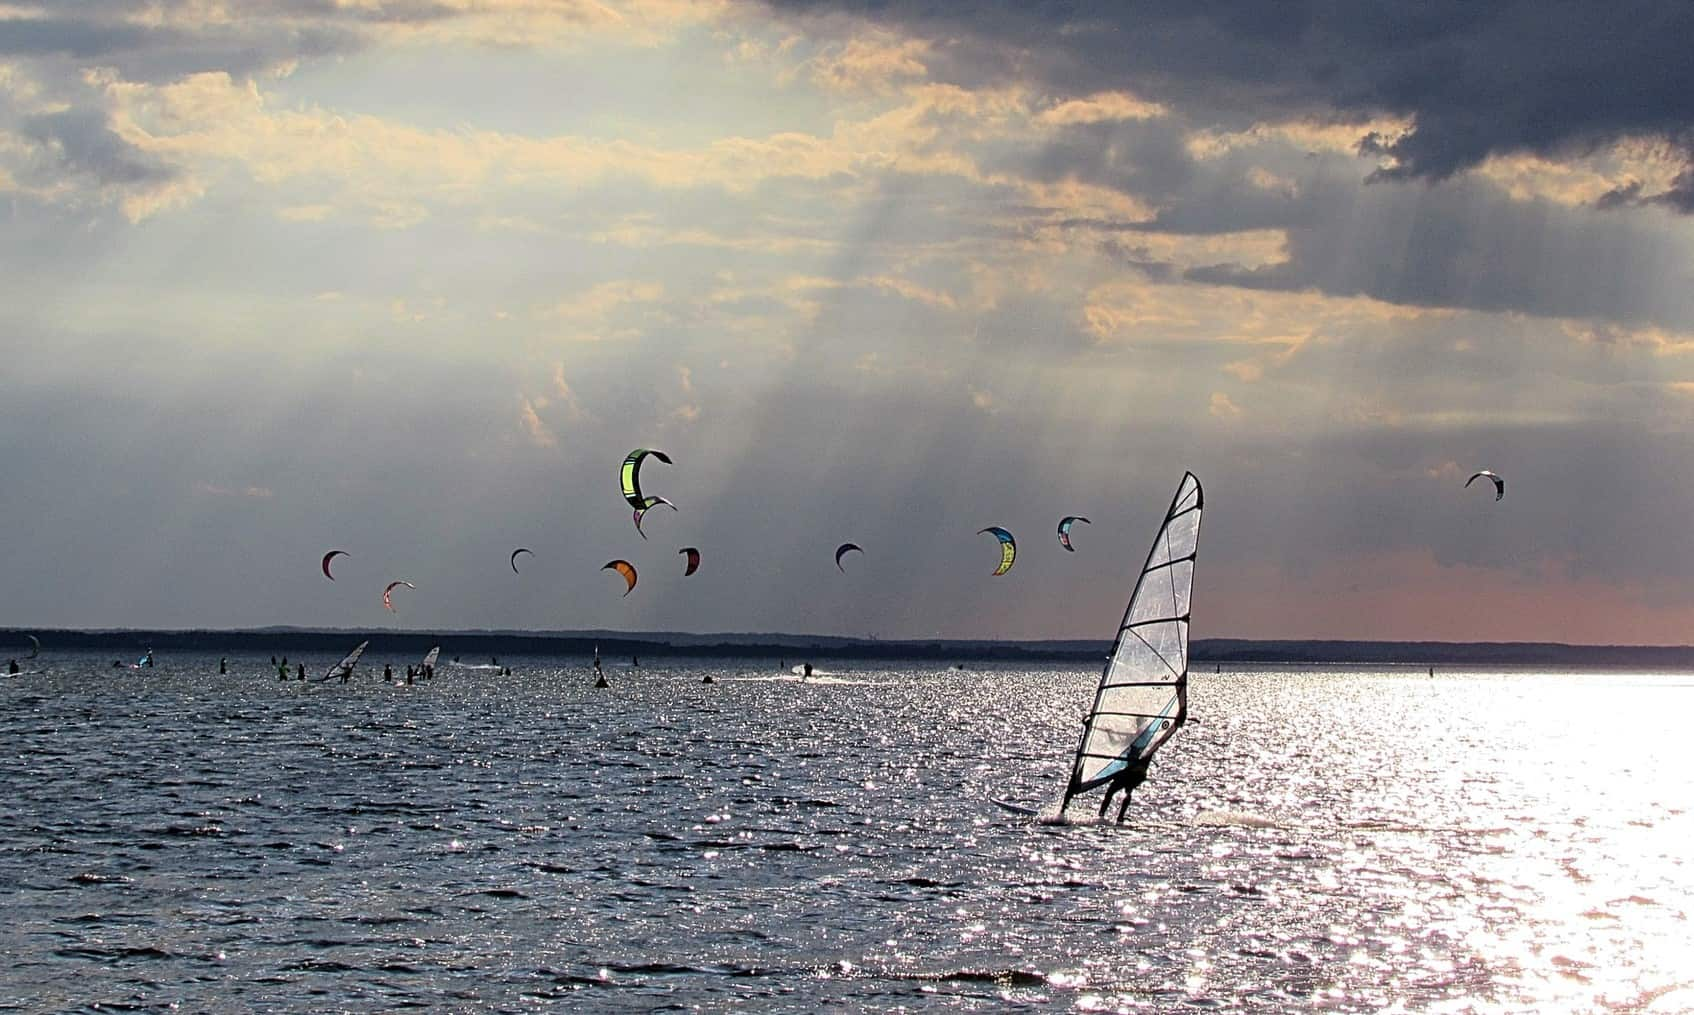 windsurfing easier than kitesurfing